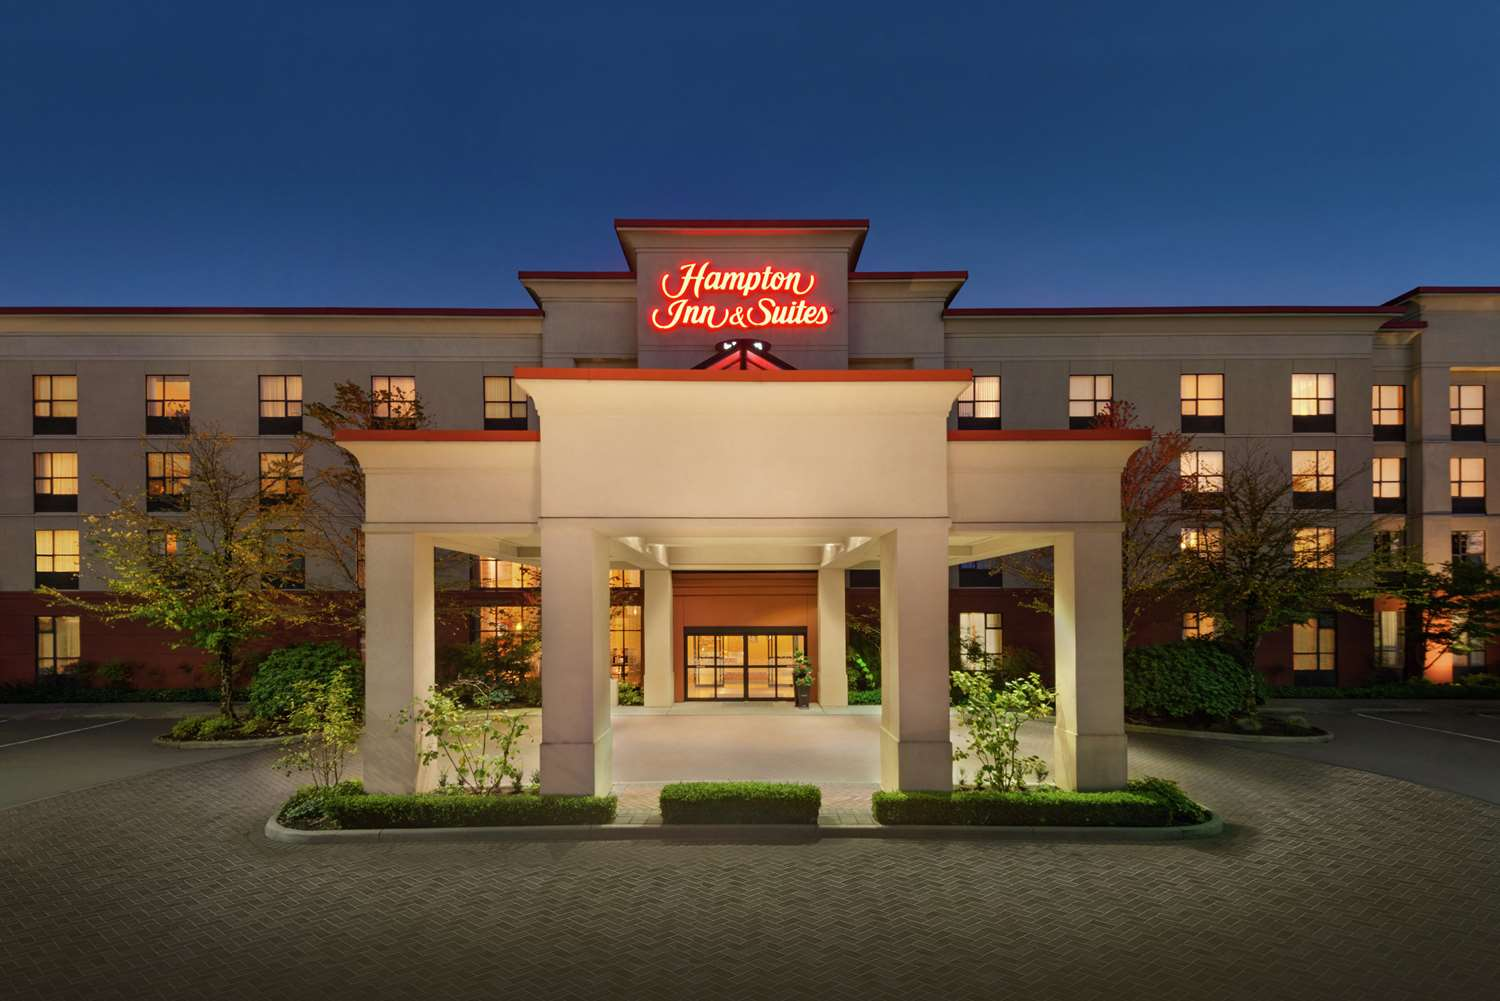 Hampton Inn & Suites Surrey